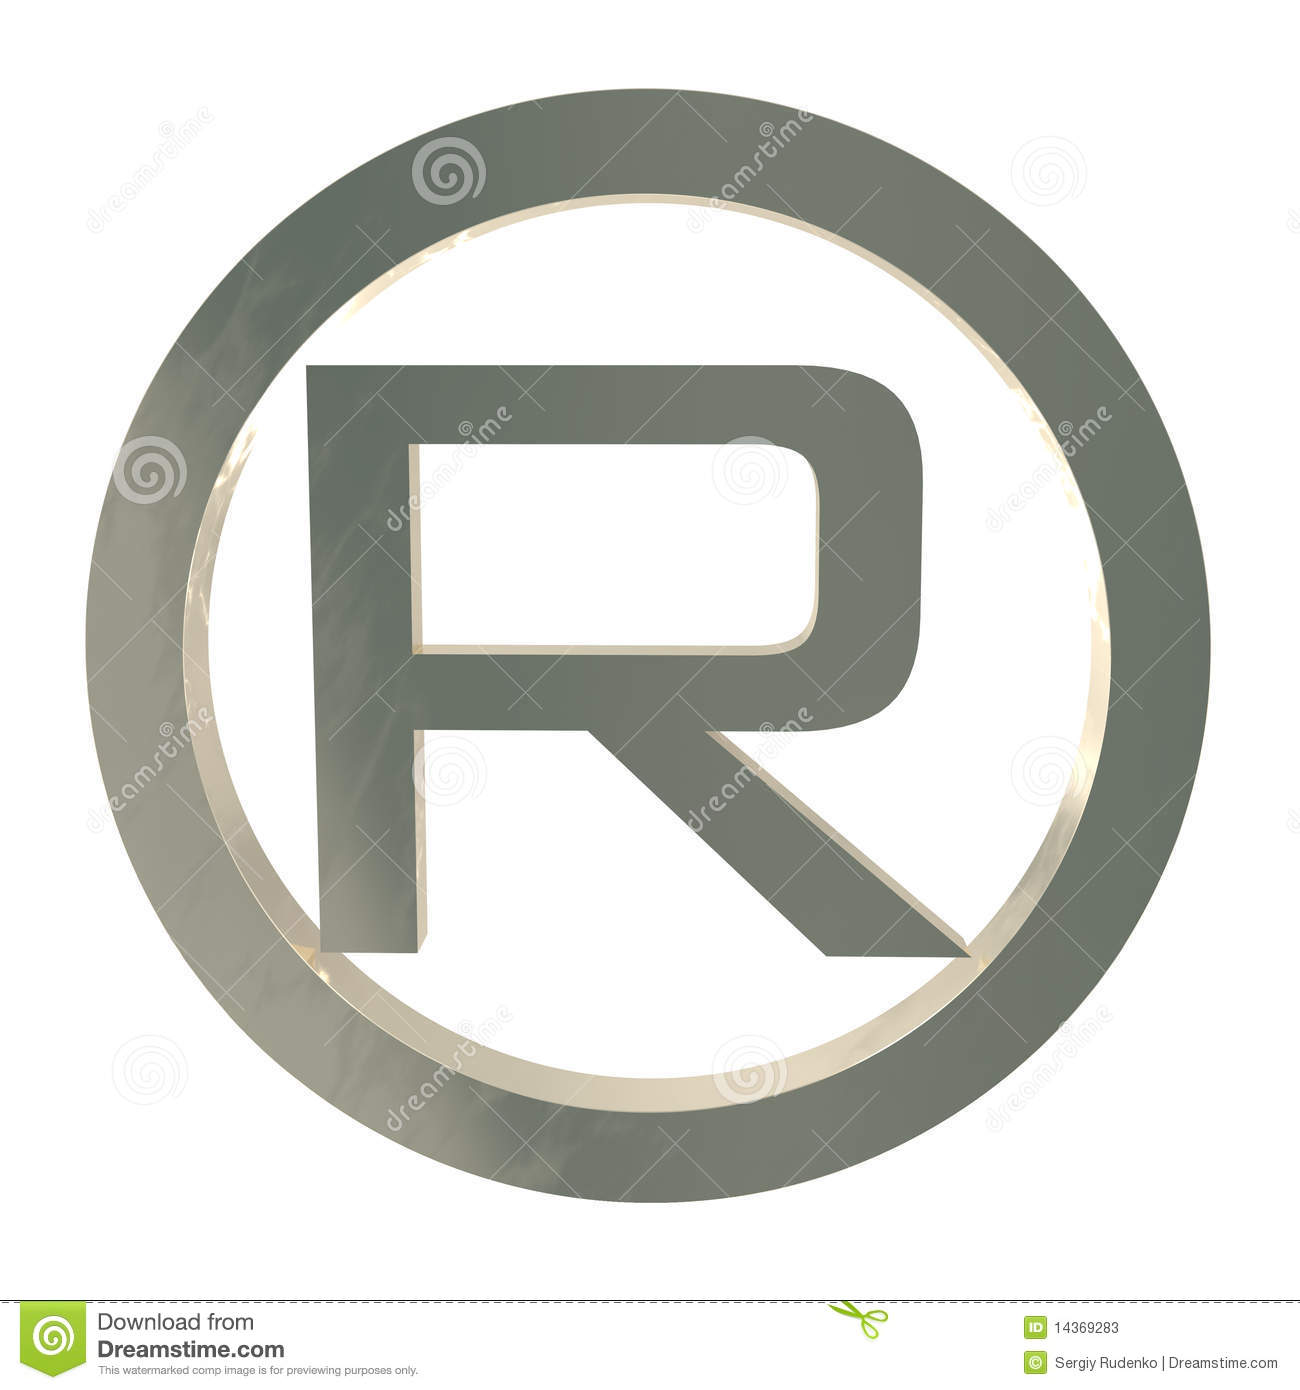 Trademark registration symbol image collections symbol and sign letter r trademark symbol isolated on white stock illustration letter r trademark symbol isolated on white biocorpaavc